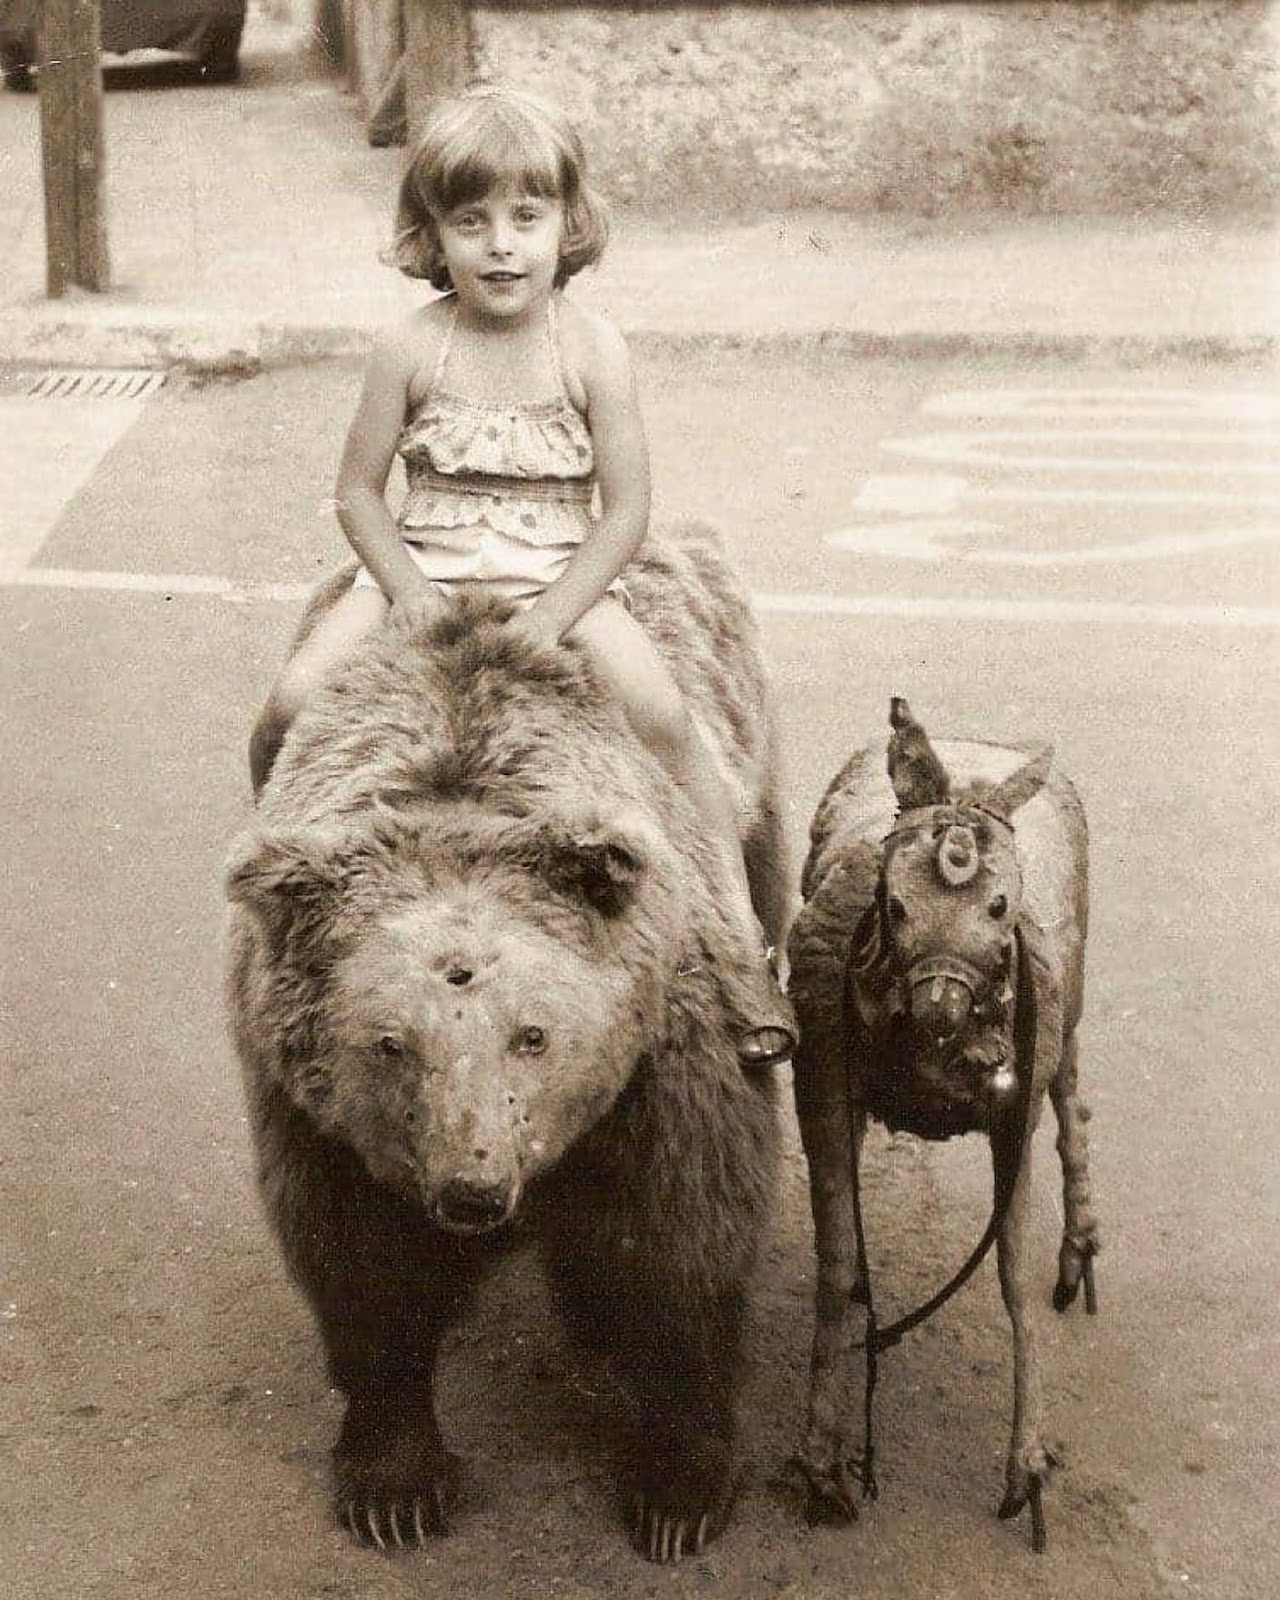 Vintage Photo of a Little Girl Riding a Taxidermy Bear, 1983